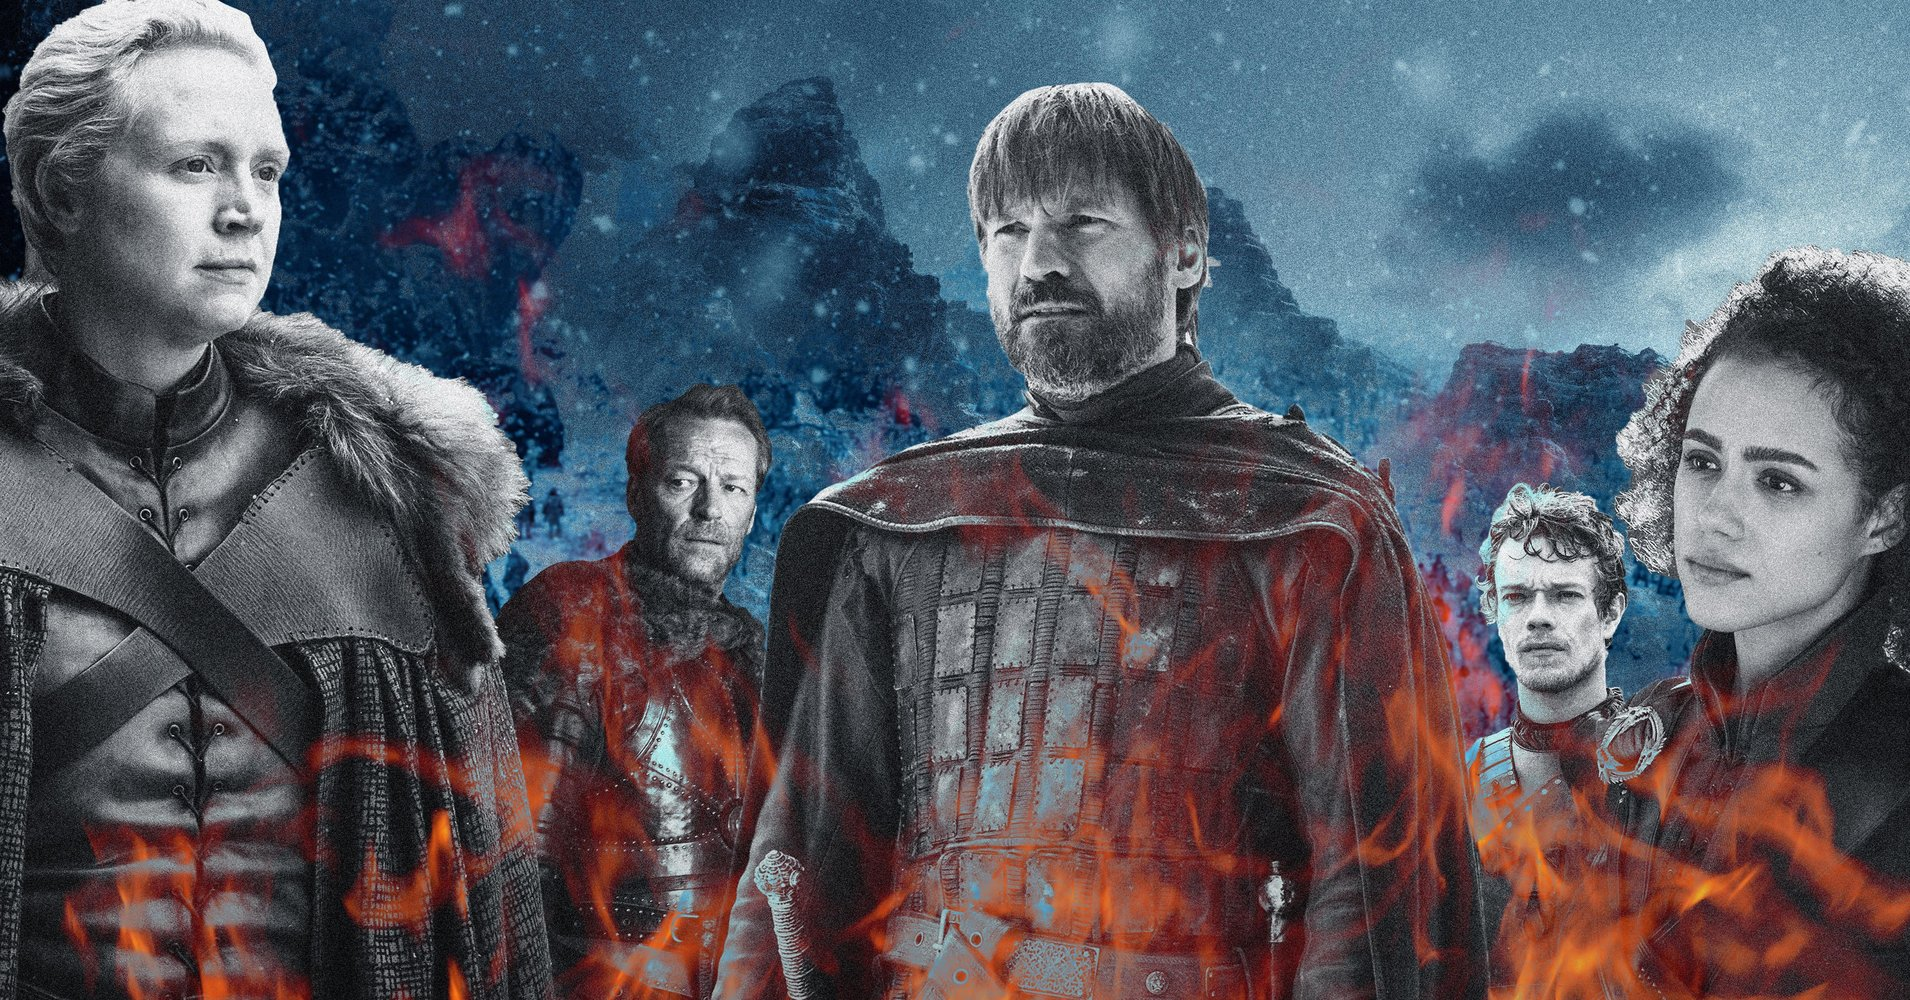 And Now Our 'Game Of Thrones' Season 8 Death Watch Begins